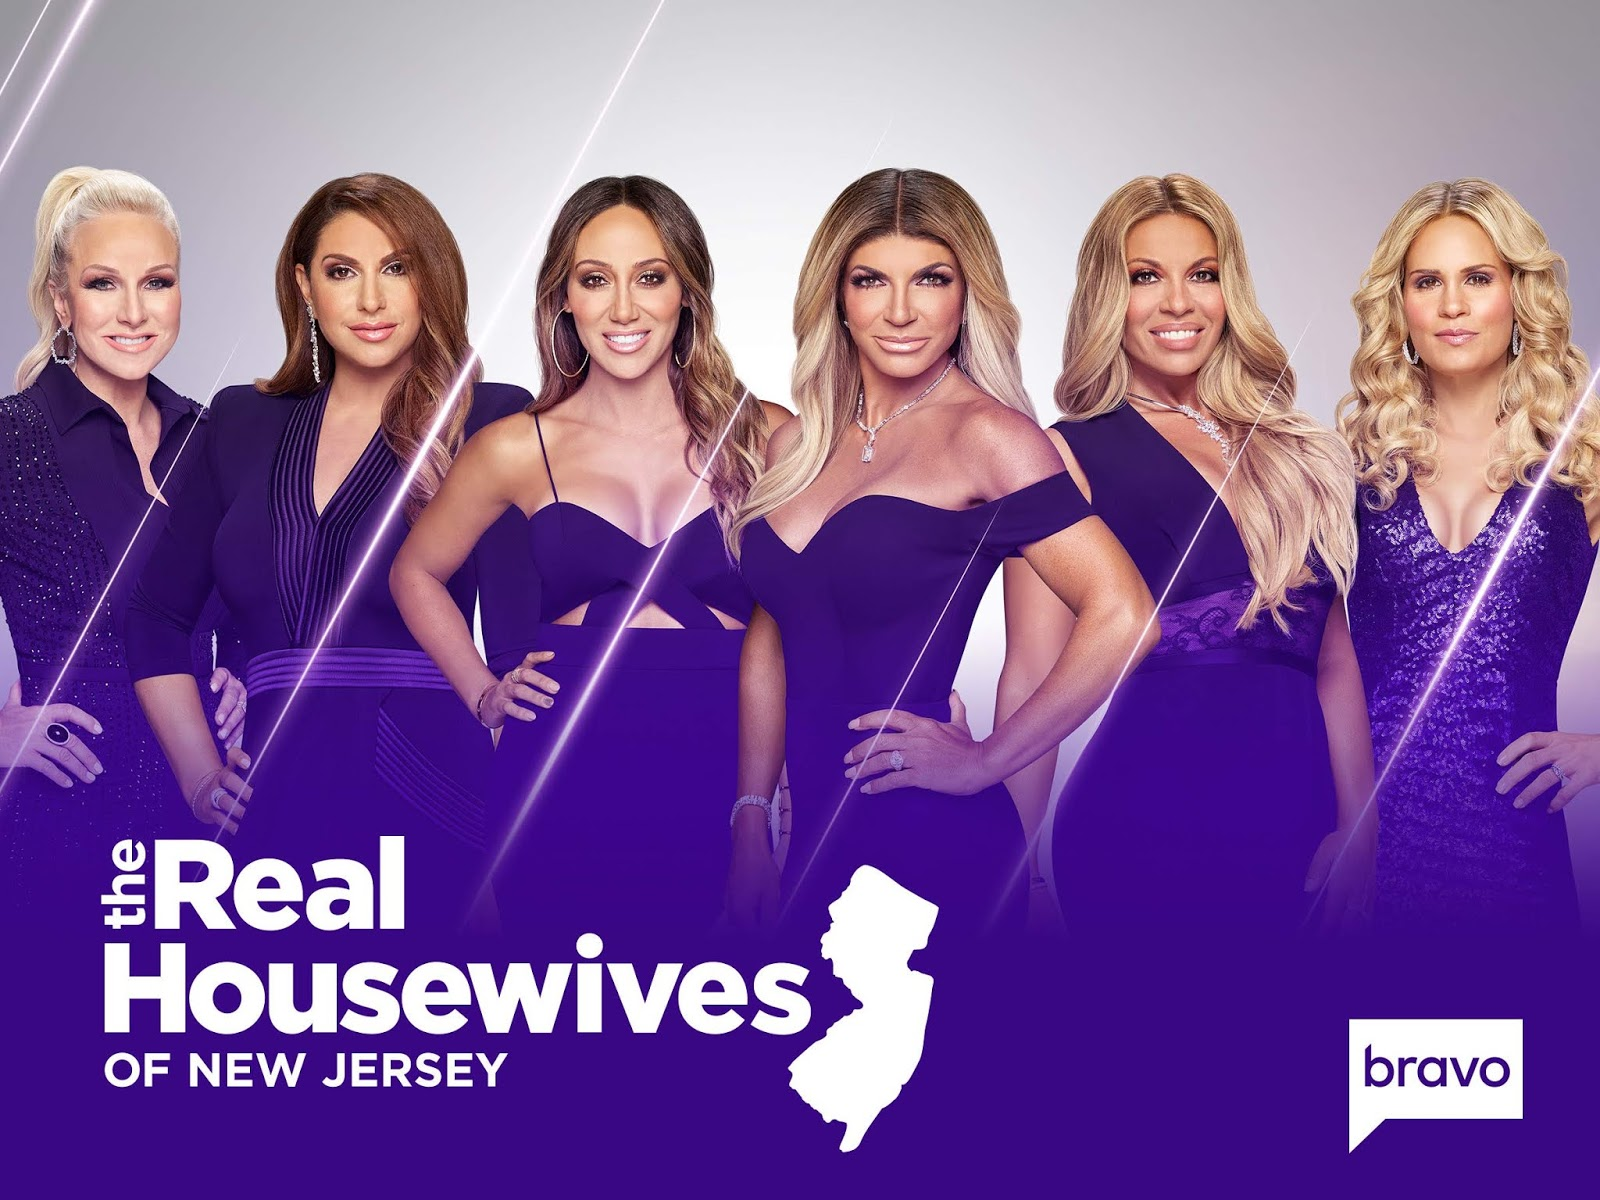 The Real Housewives of New Jersey Season 11 Episode 5 to be released soon